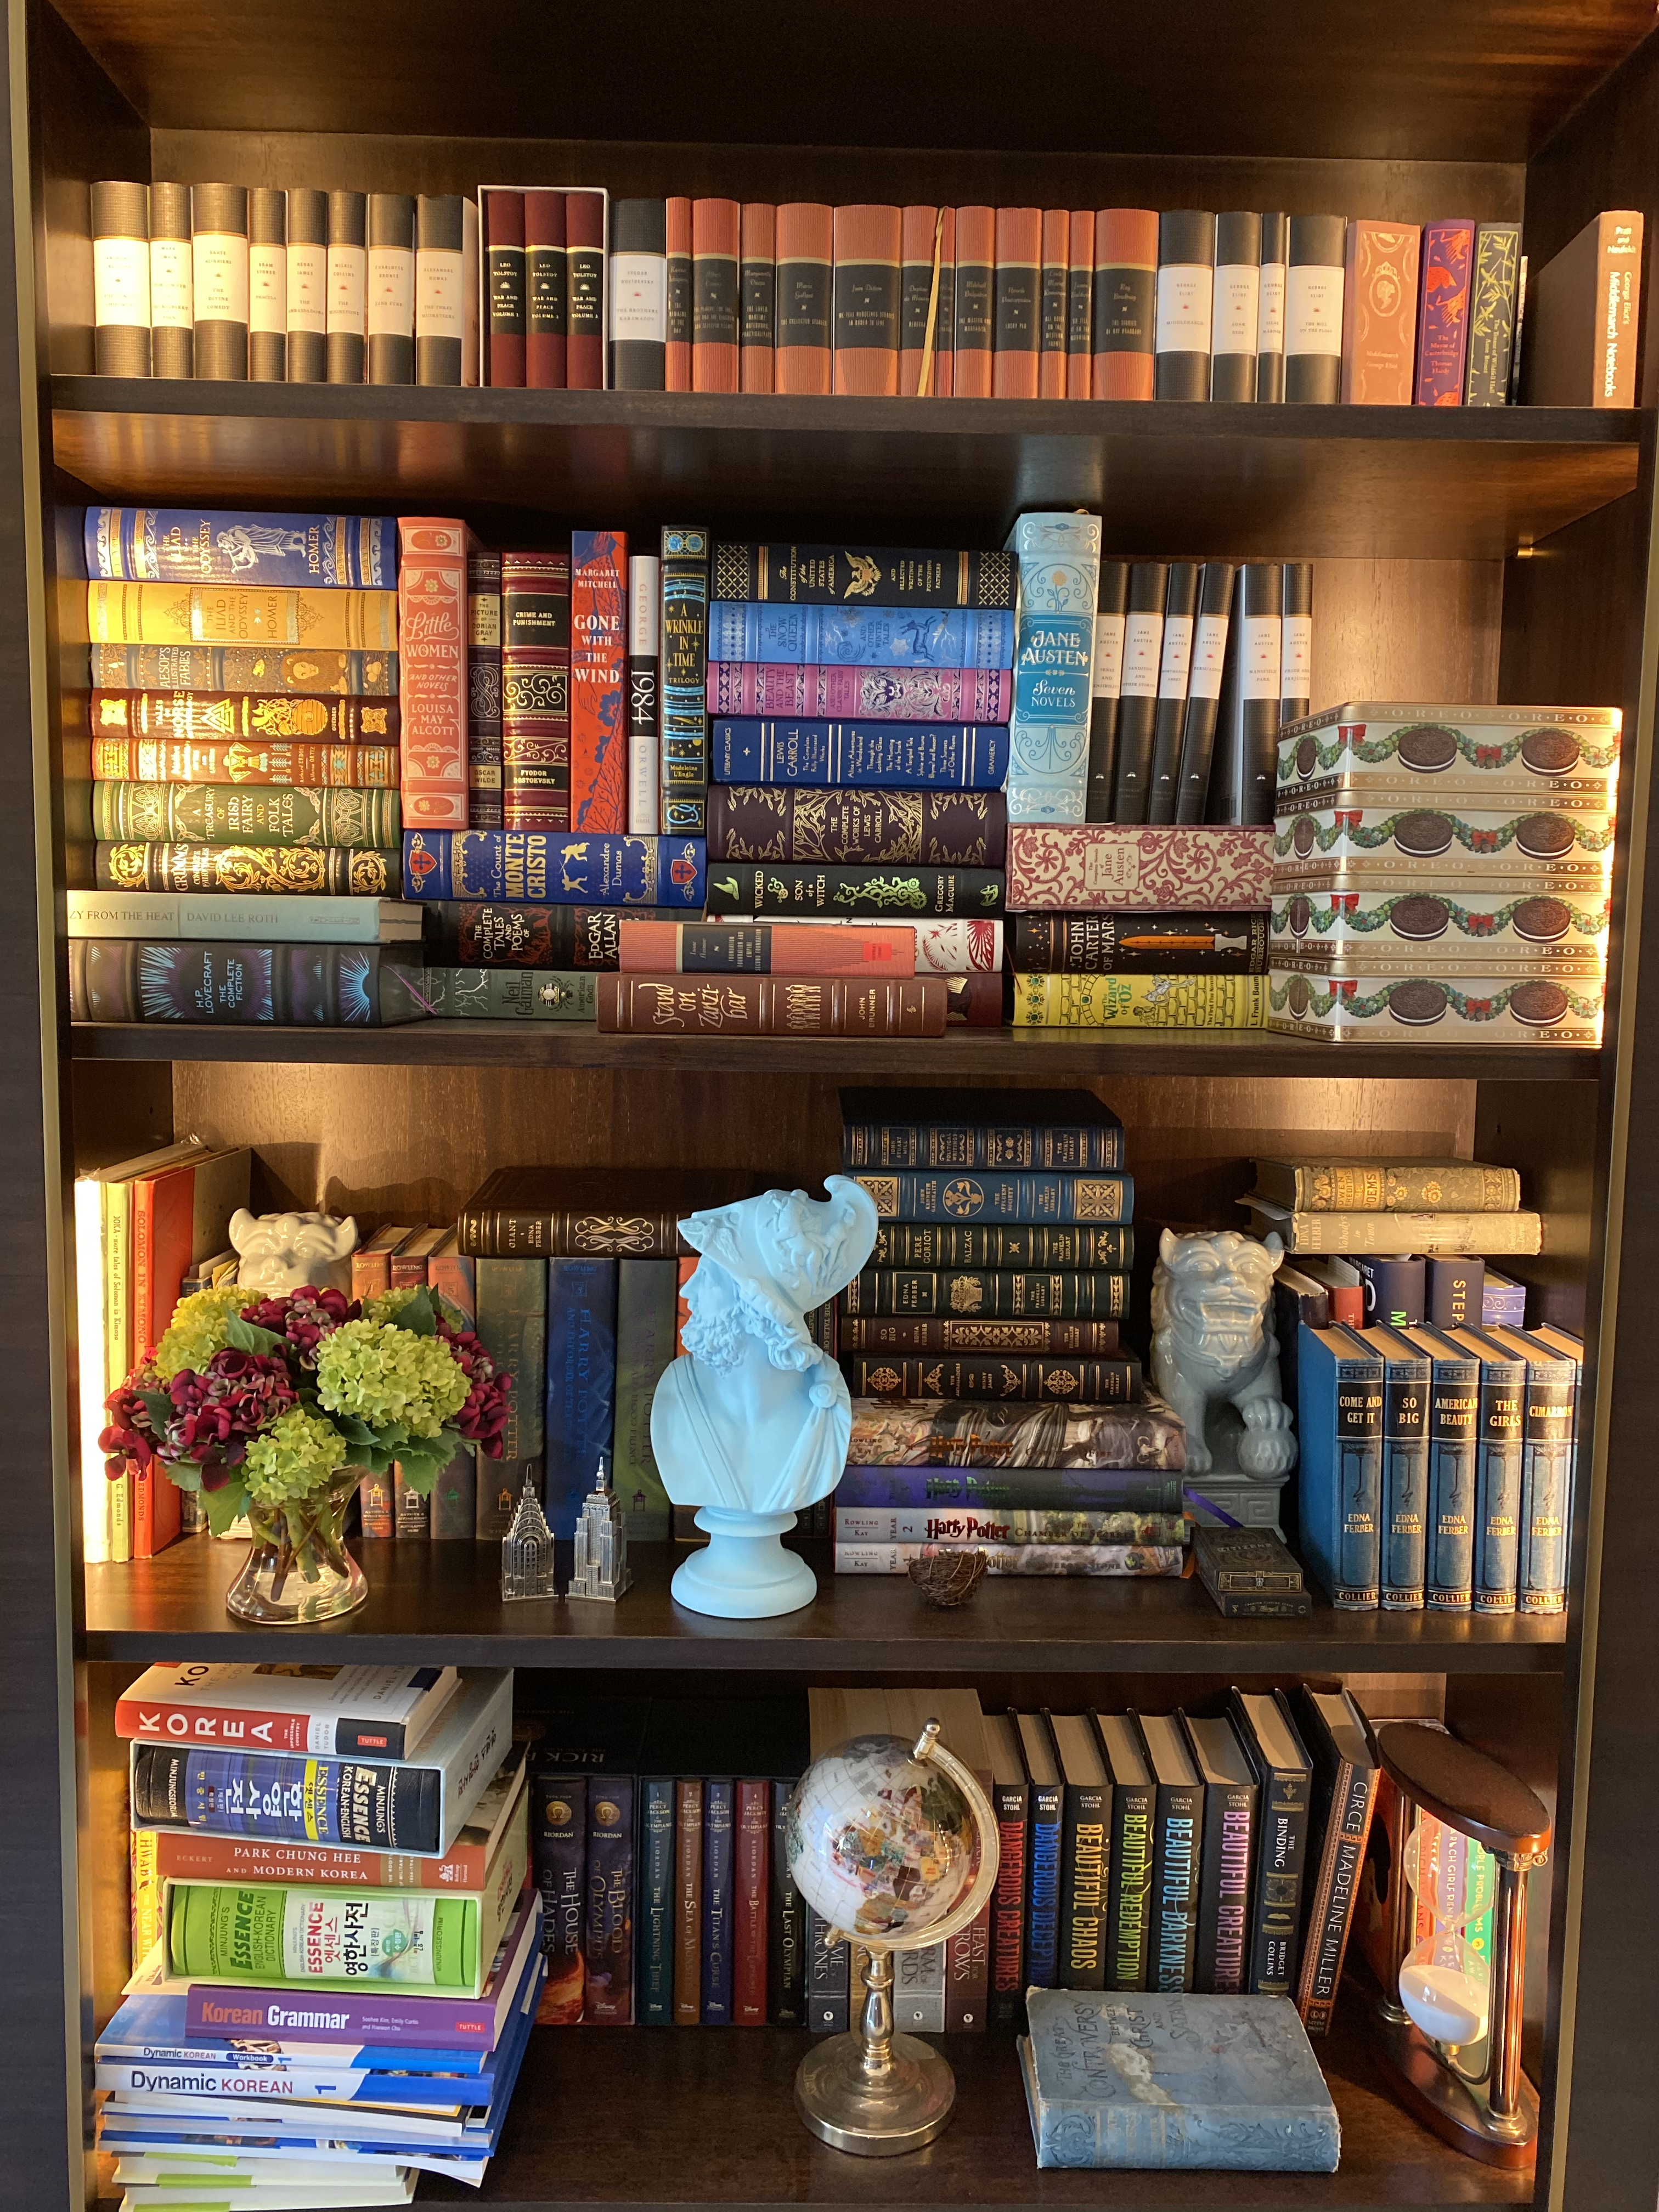 Working on Home Bookcases and Fiction Library